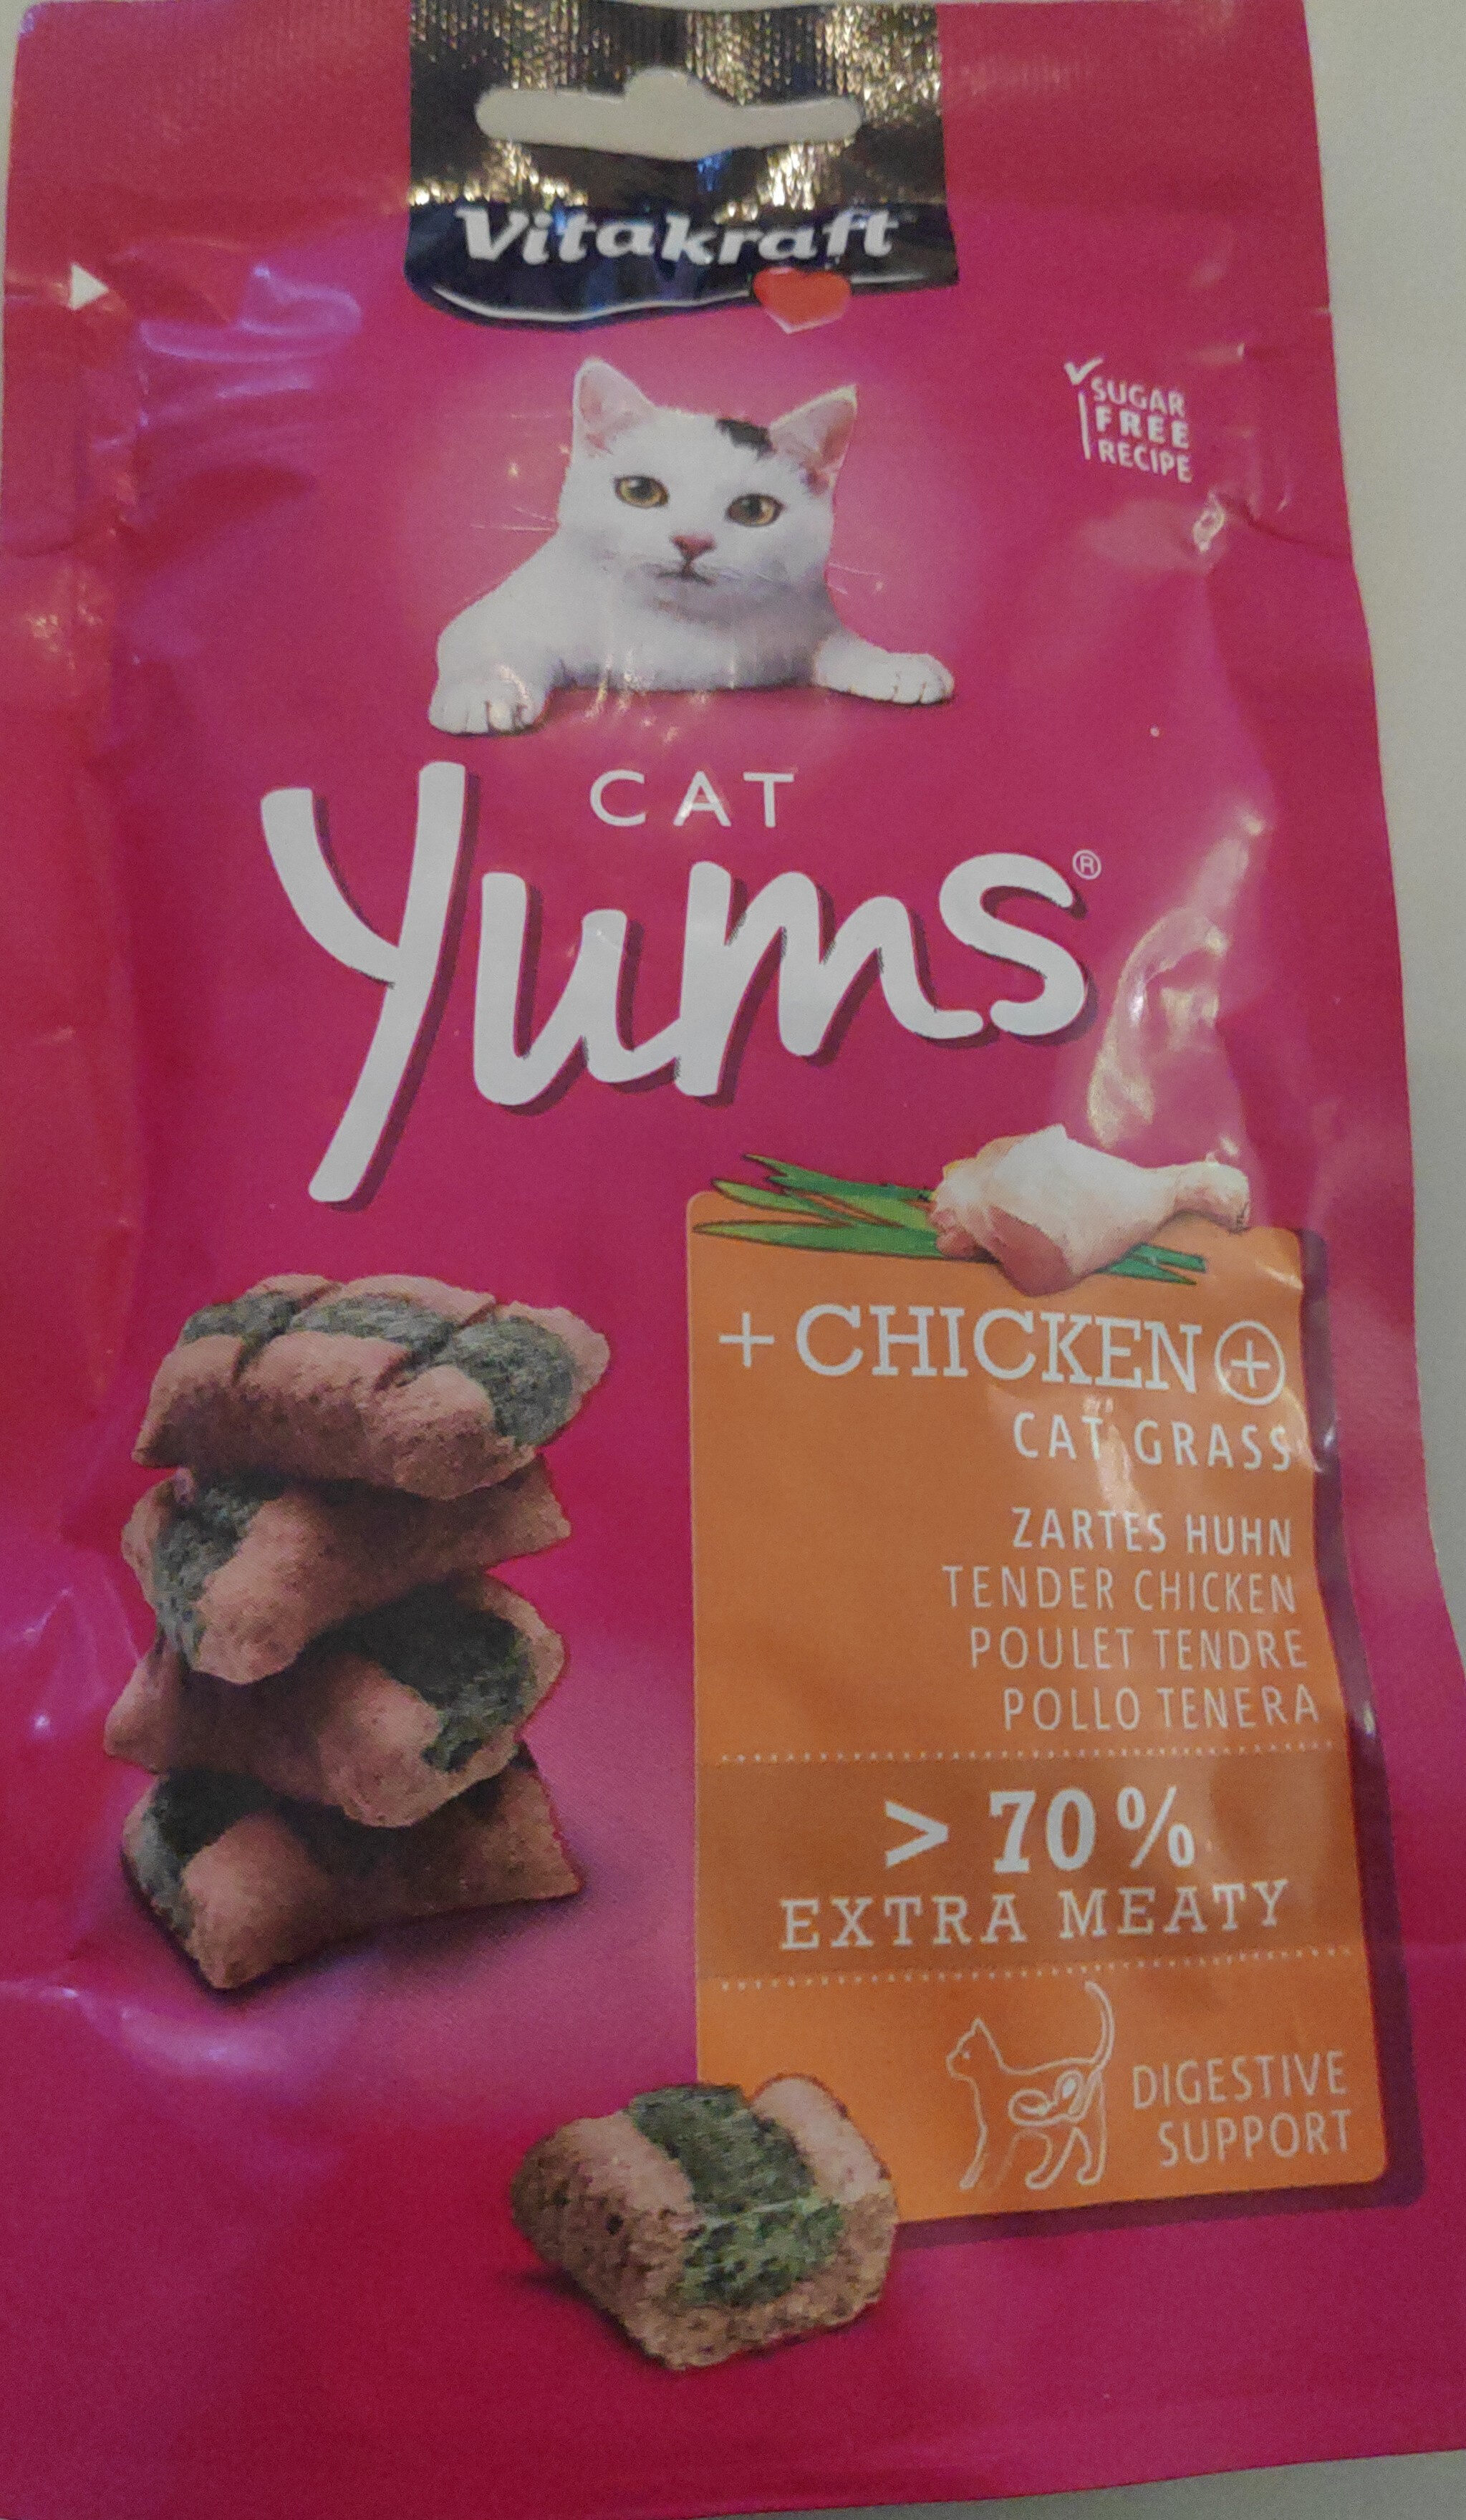 Cat Yums + Chicken - Product